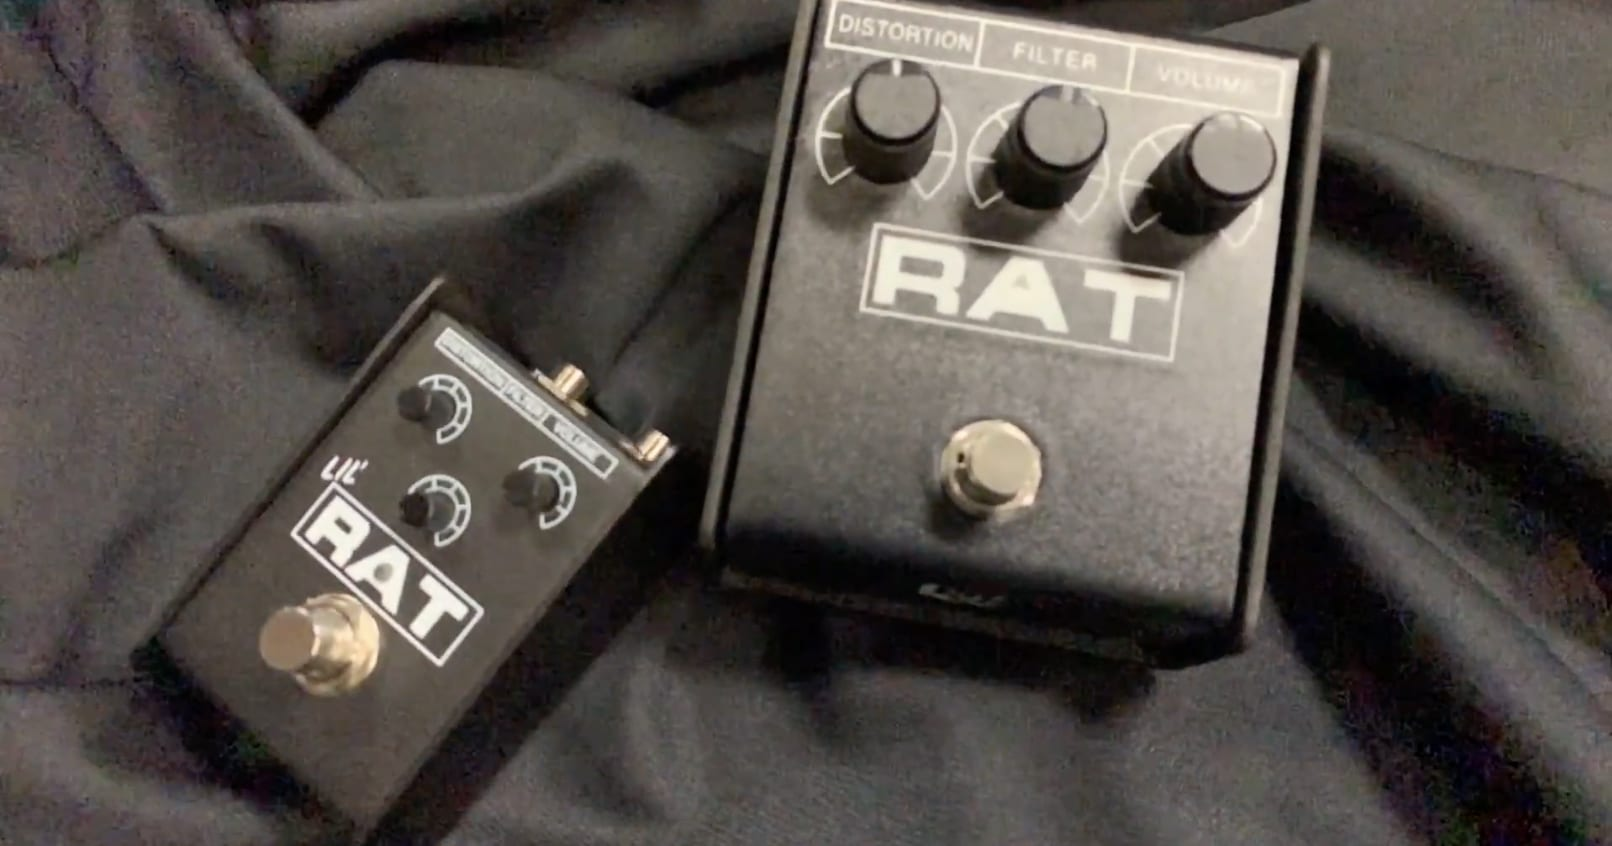 Lil Rat next to a Rat 2 pedal